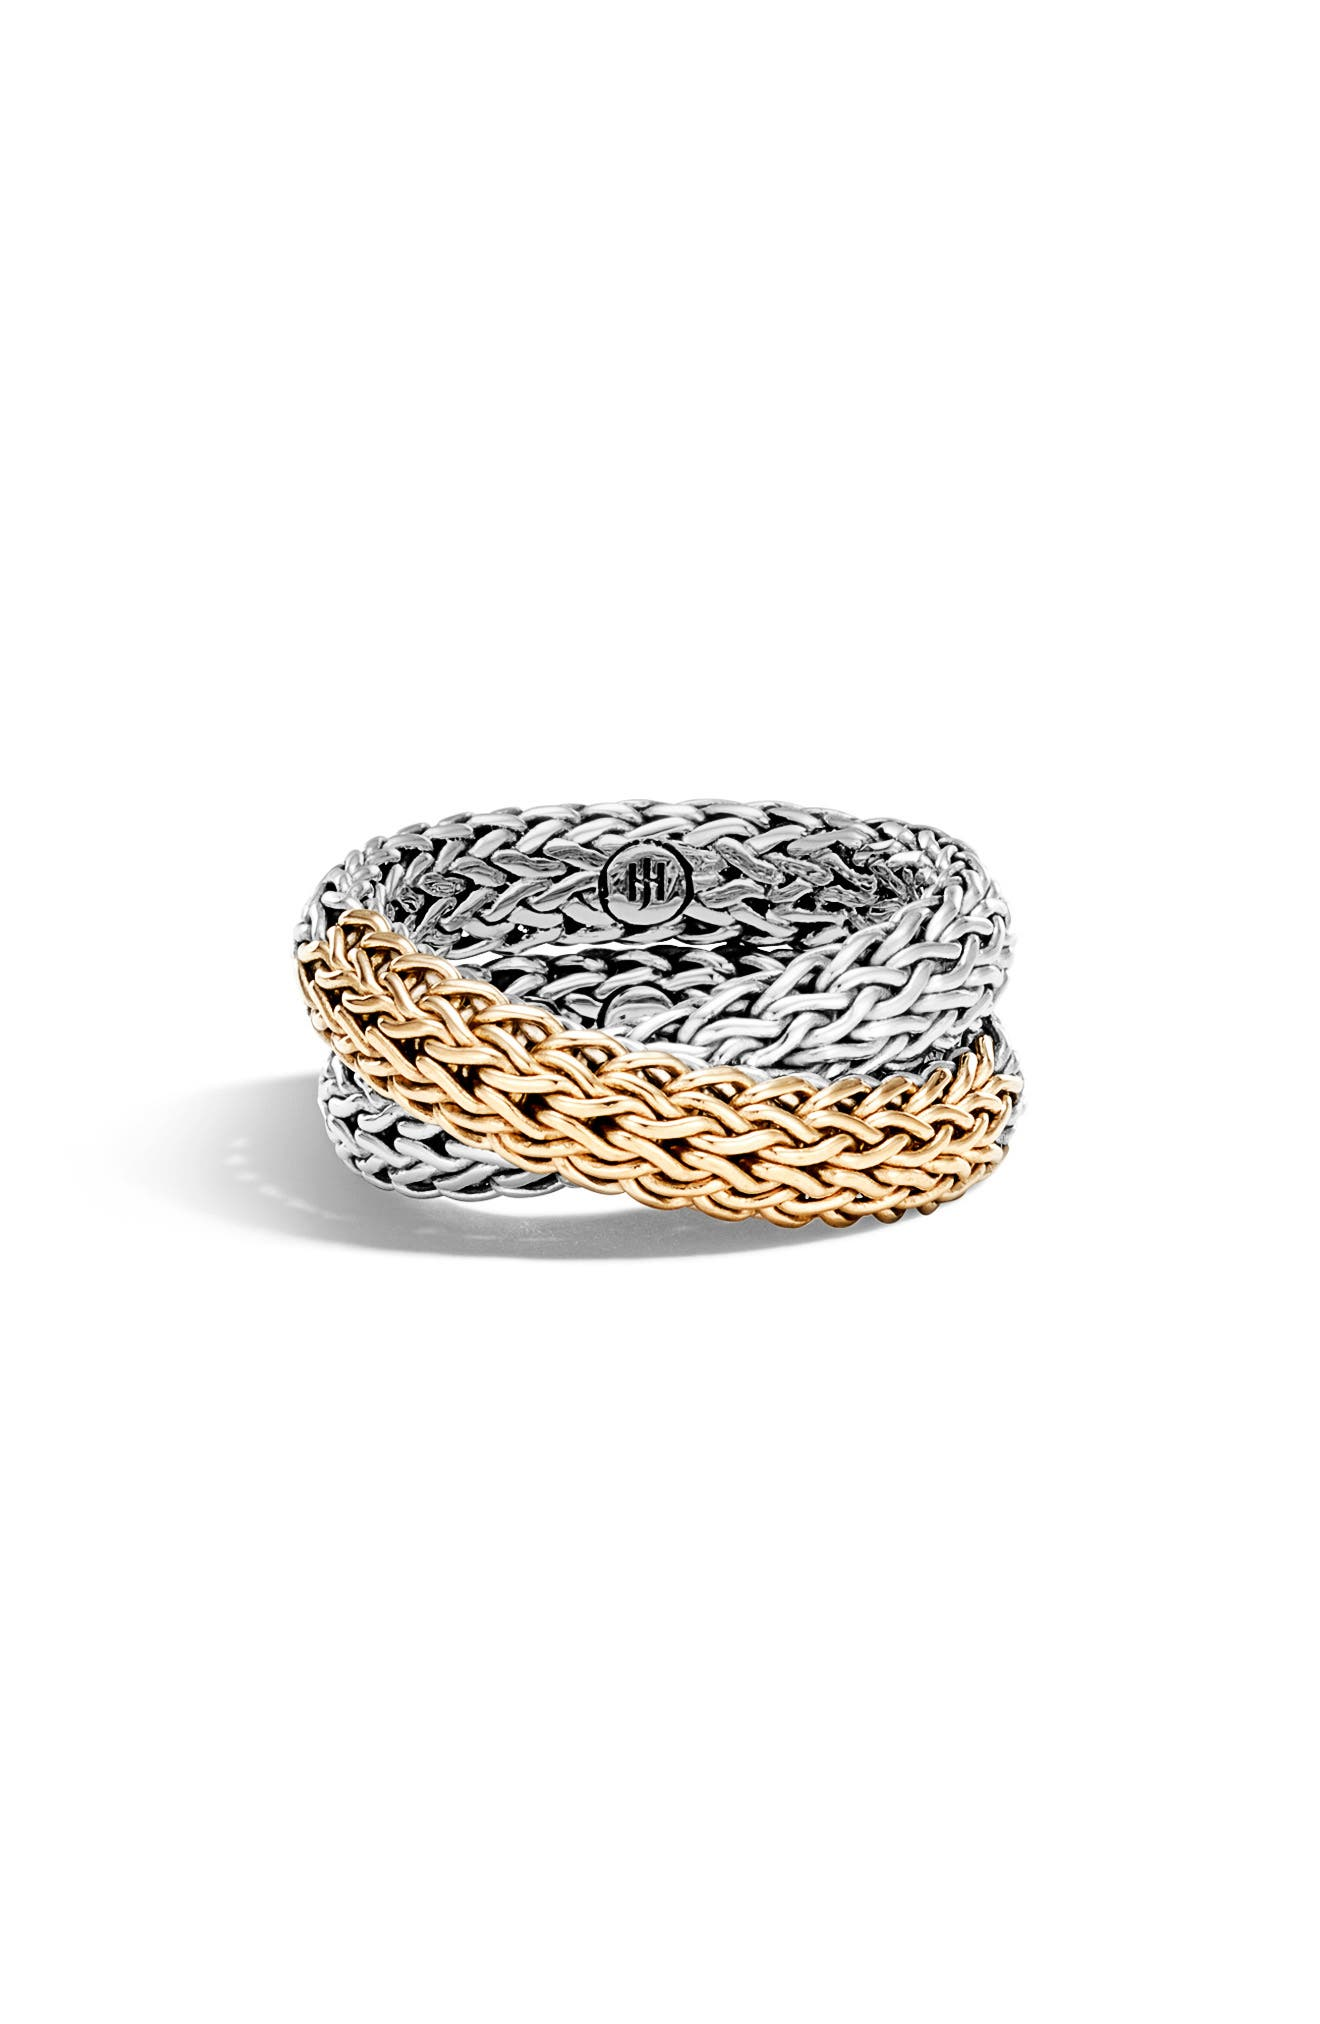 JOHN HARDY,                             'Classic Chain' Overlap Ring,                             Alternate thumbnail 2, color,                             SILVER/ GOLD